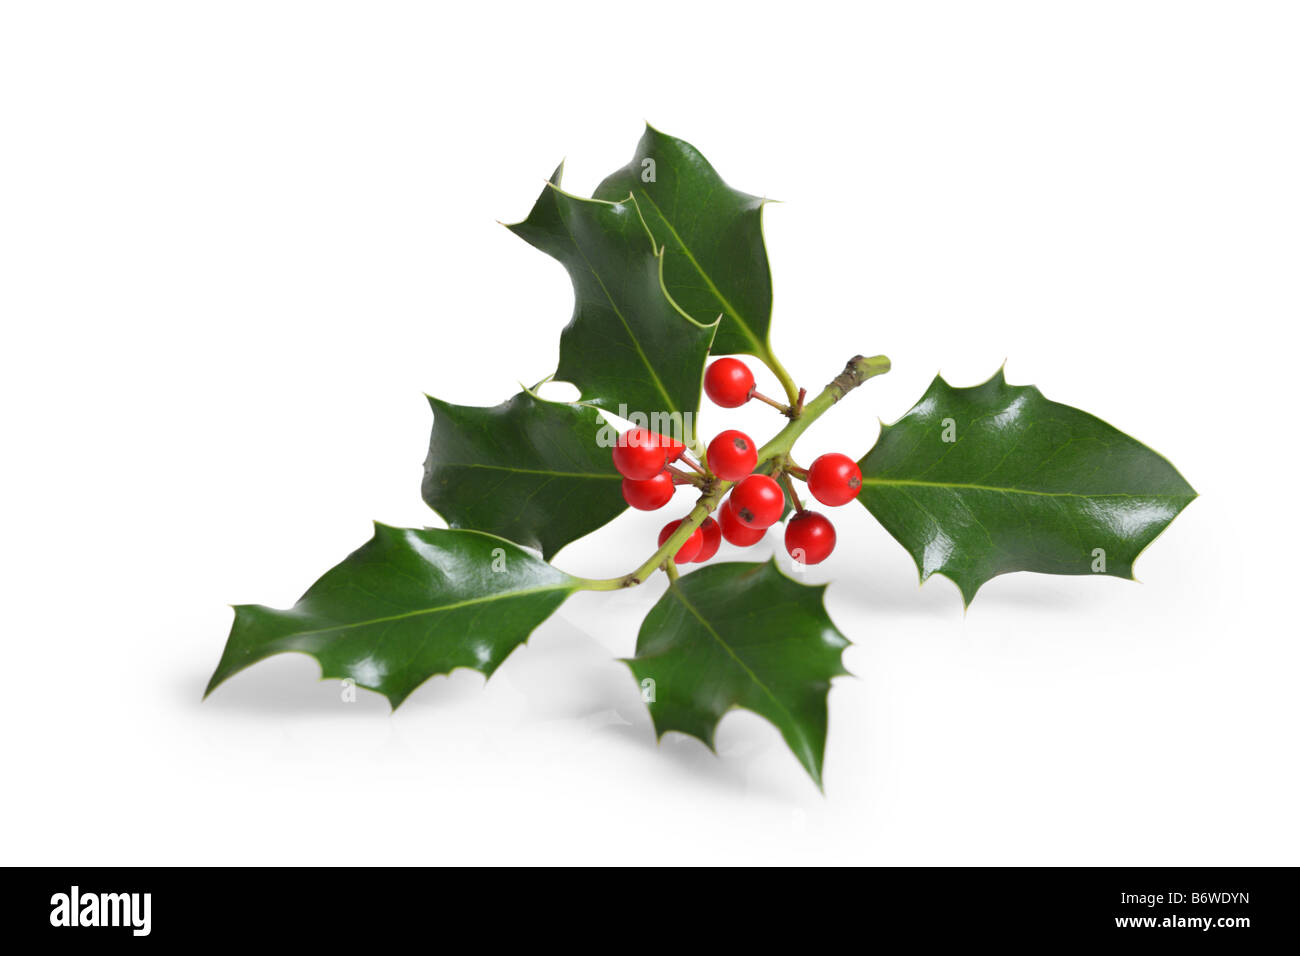 Holly branch with berries cut out isolated on white background - Stock Image